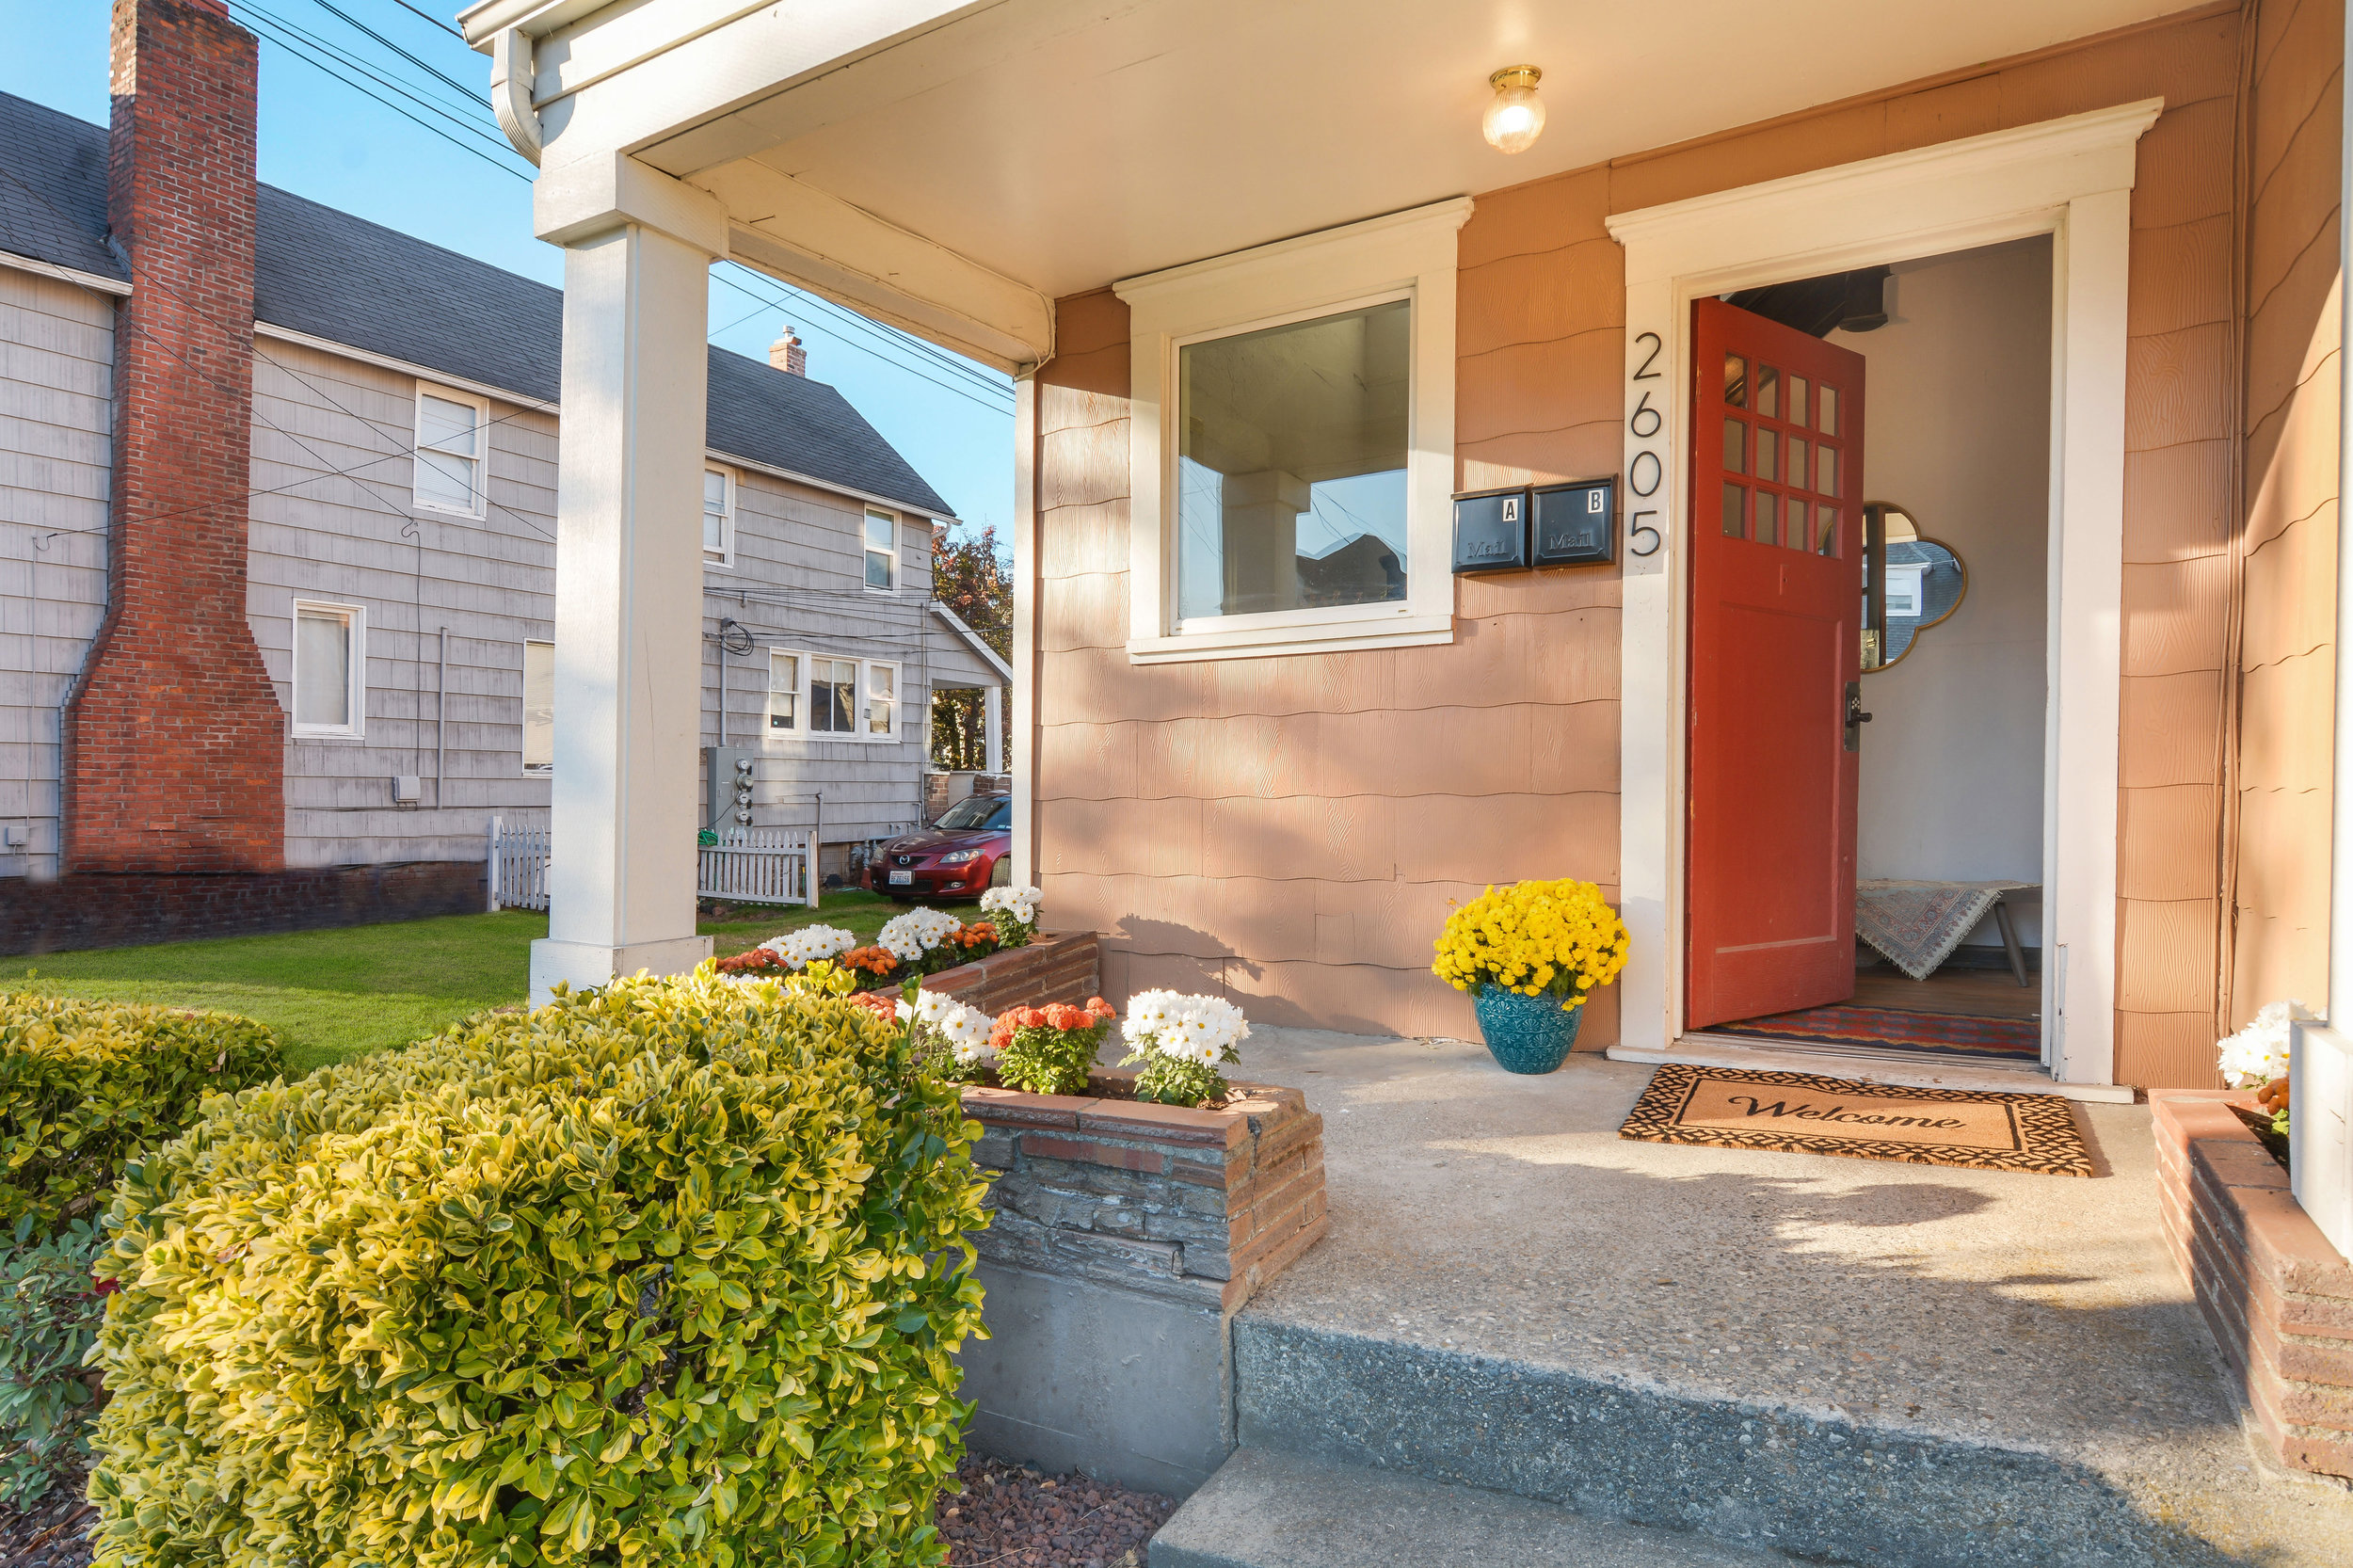 Covered front porch with flower boxes and shared entry for the 2 units inside this home.